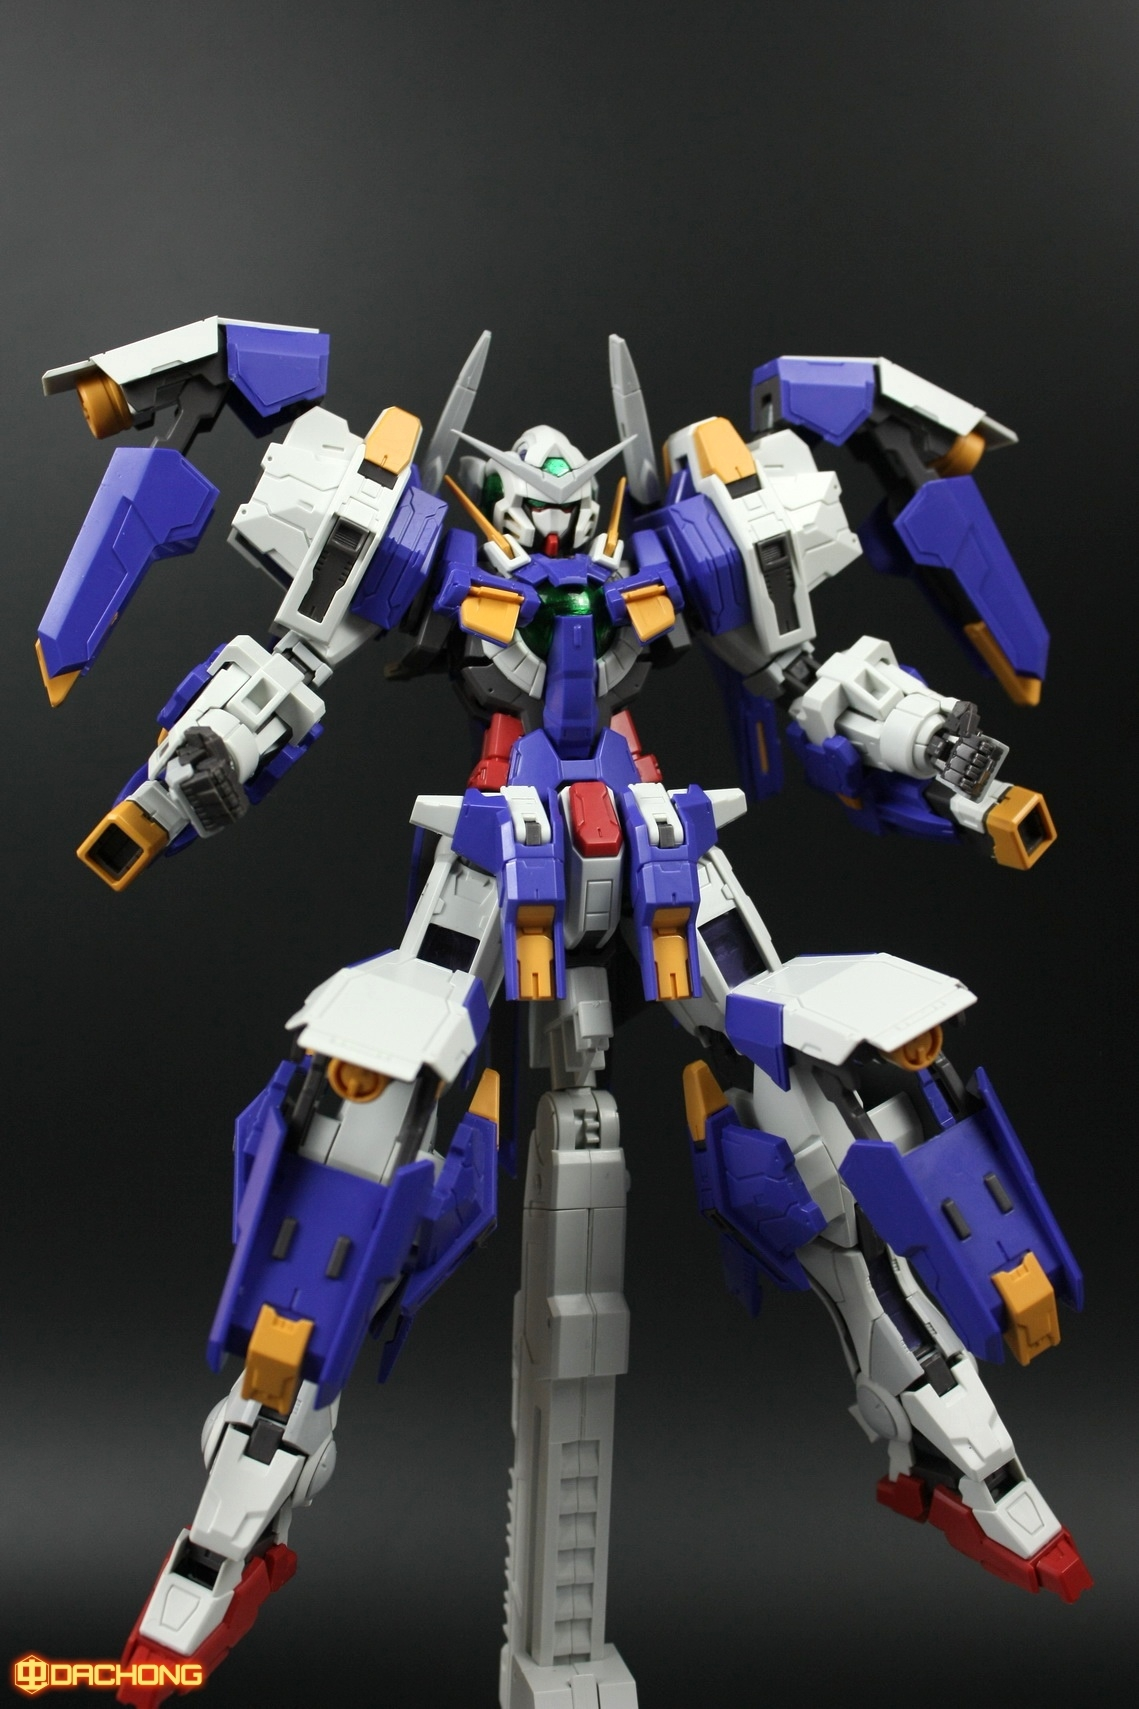 S254_MG_exia_HS_review_inask_067.jpg